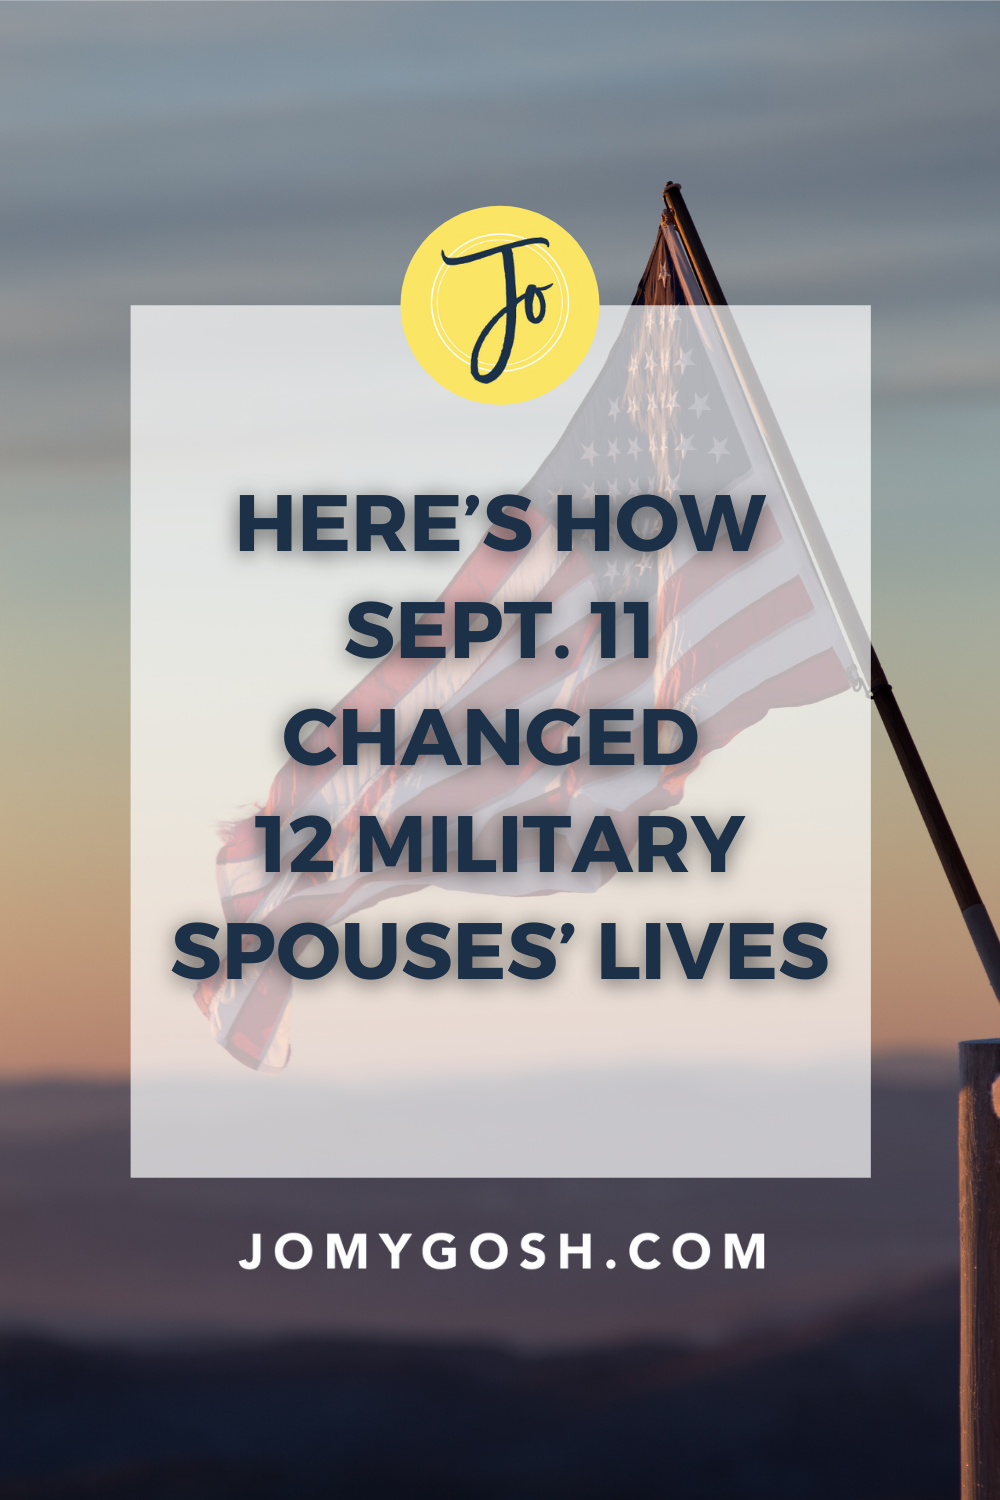 The world changed. So did we. #militaryspouse #milspouse #september11 #911 #sept11 #patriotday #milfam #milfams #militaryfamily